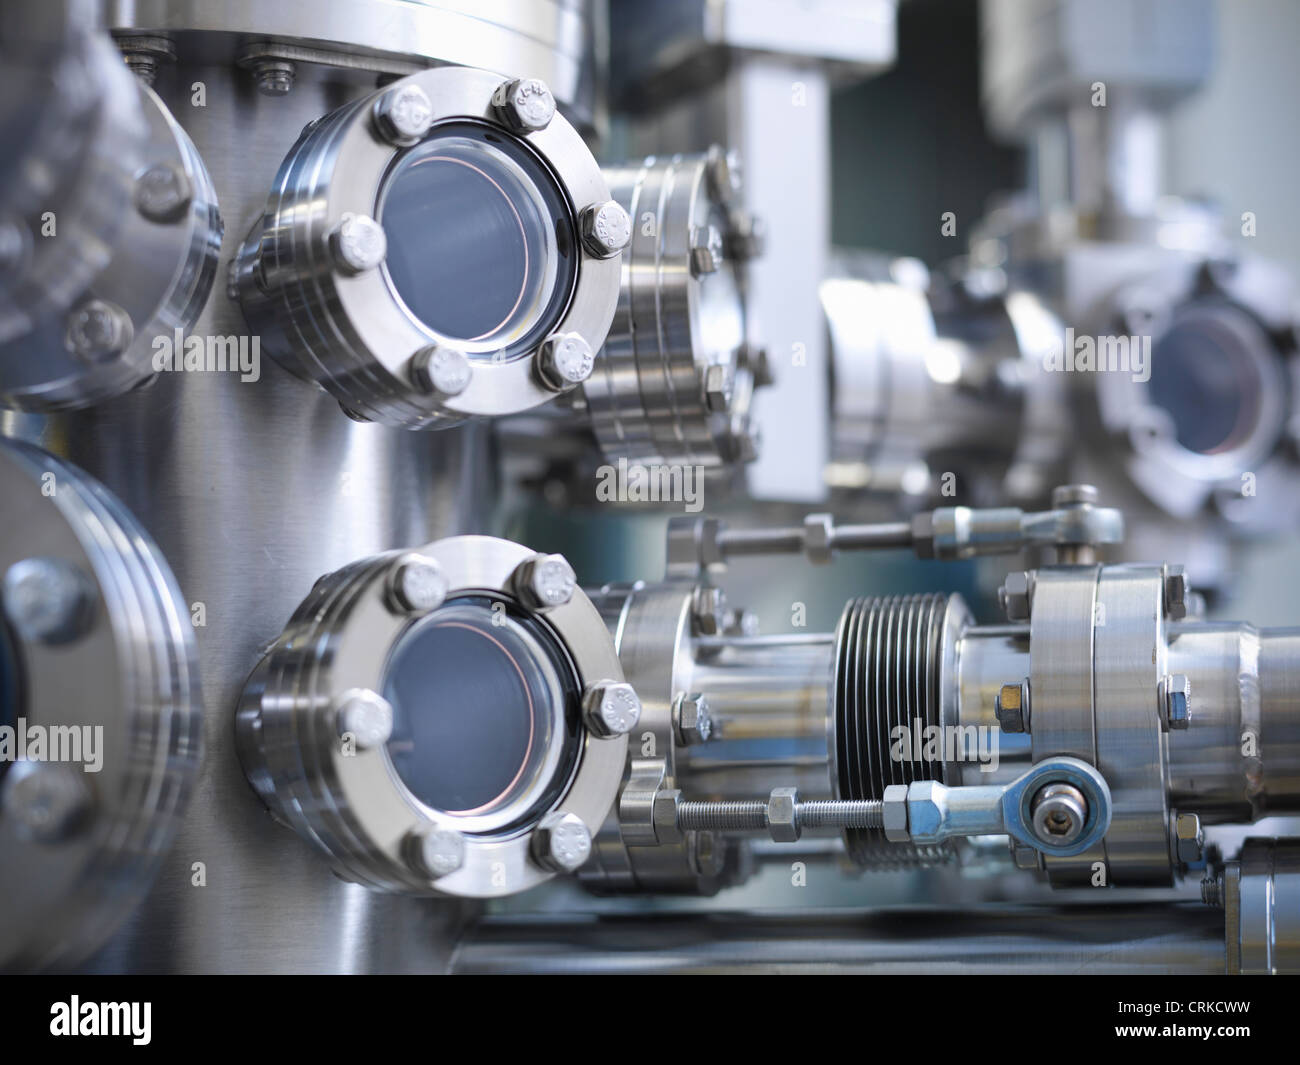 Close up of vacuum chamber in lab - Stock Image